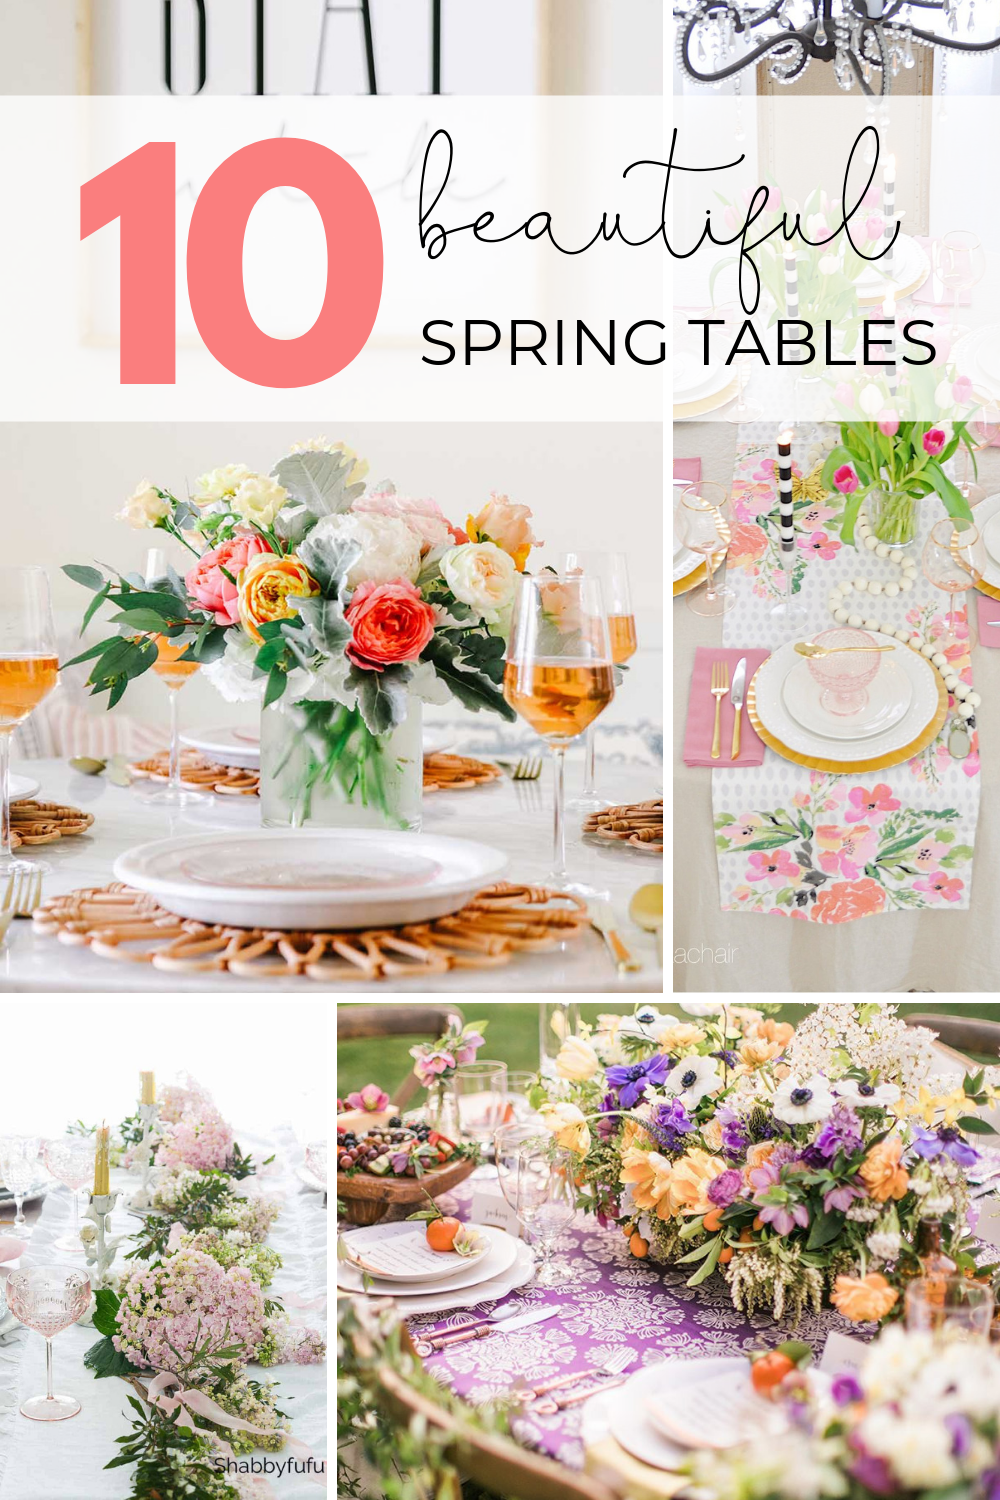 10 beautiful spring tables